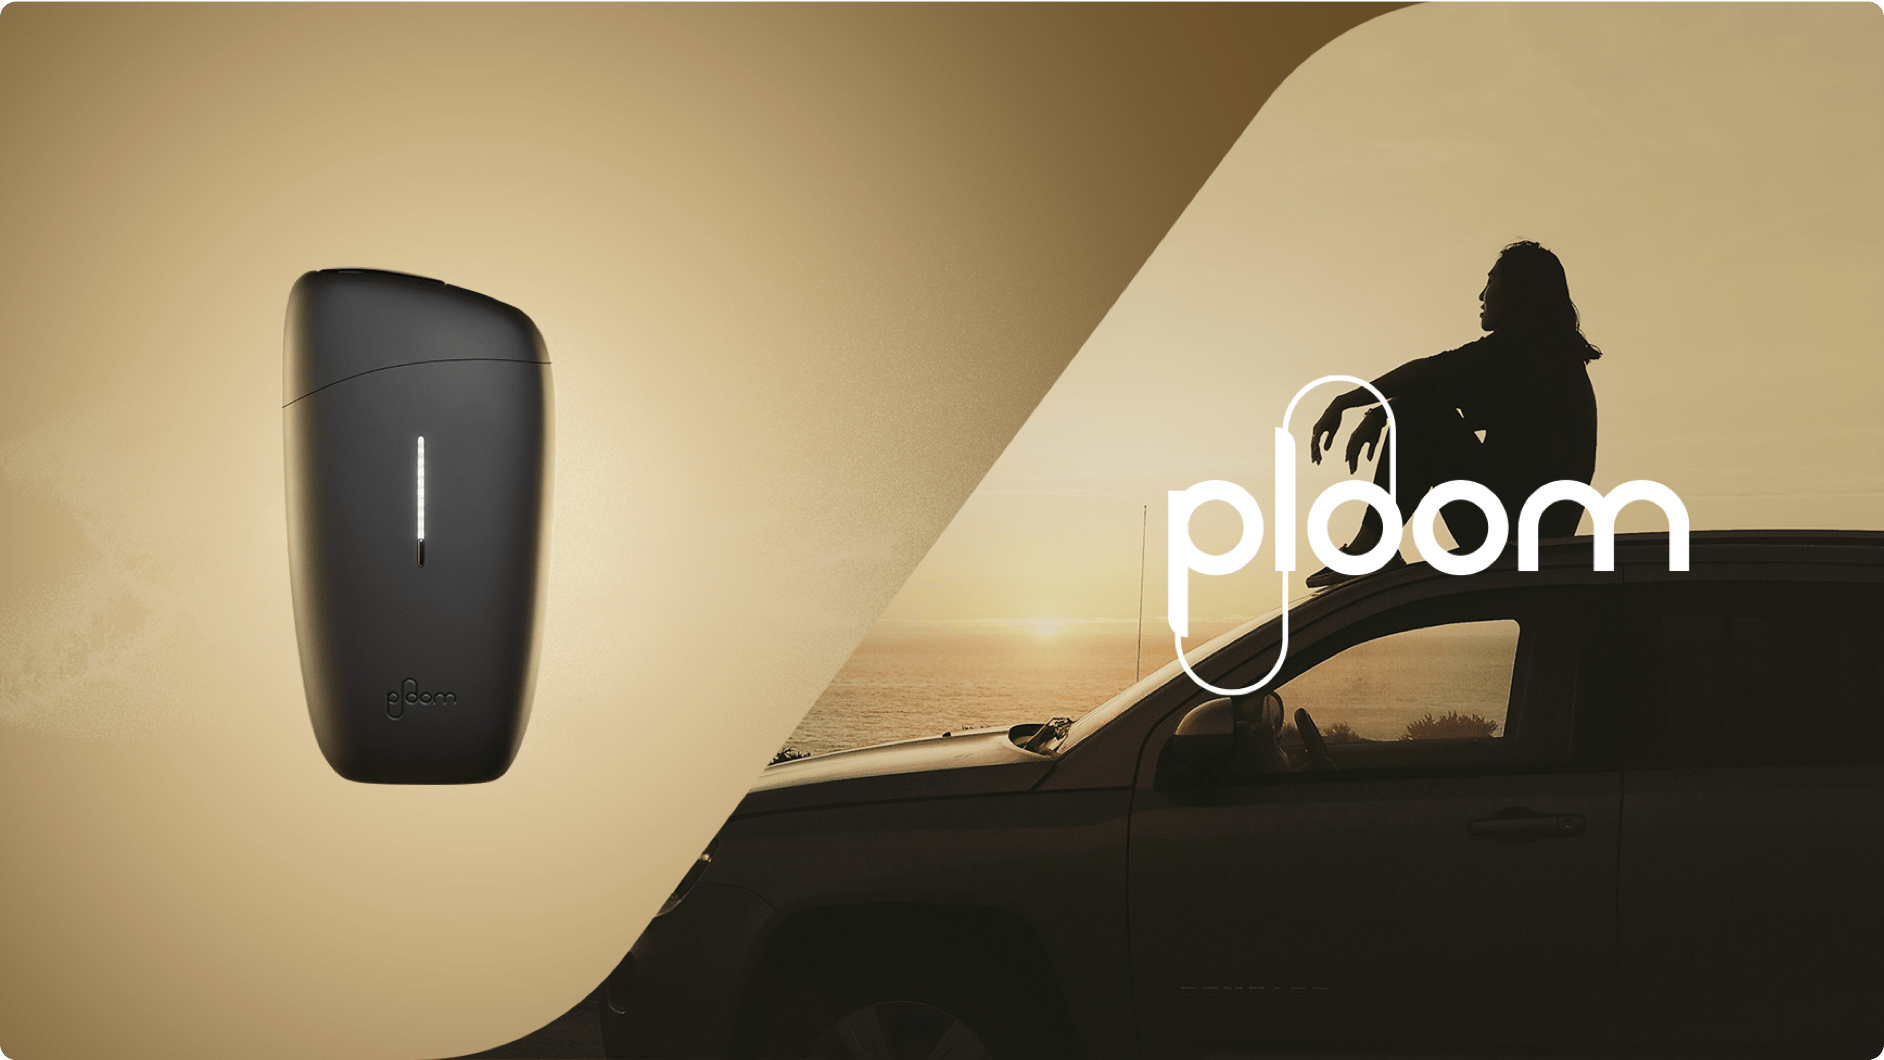 Ploom device designed for the modern lifestyle